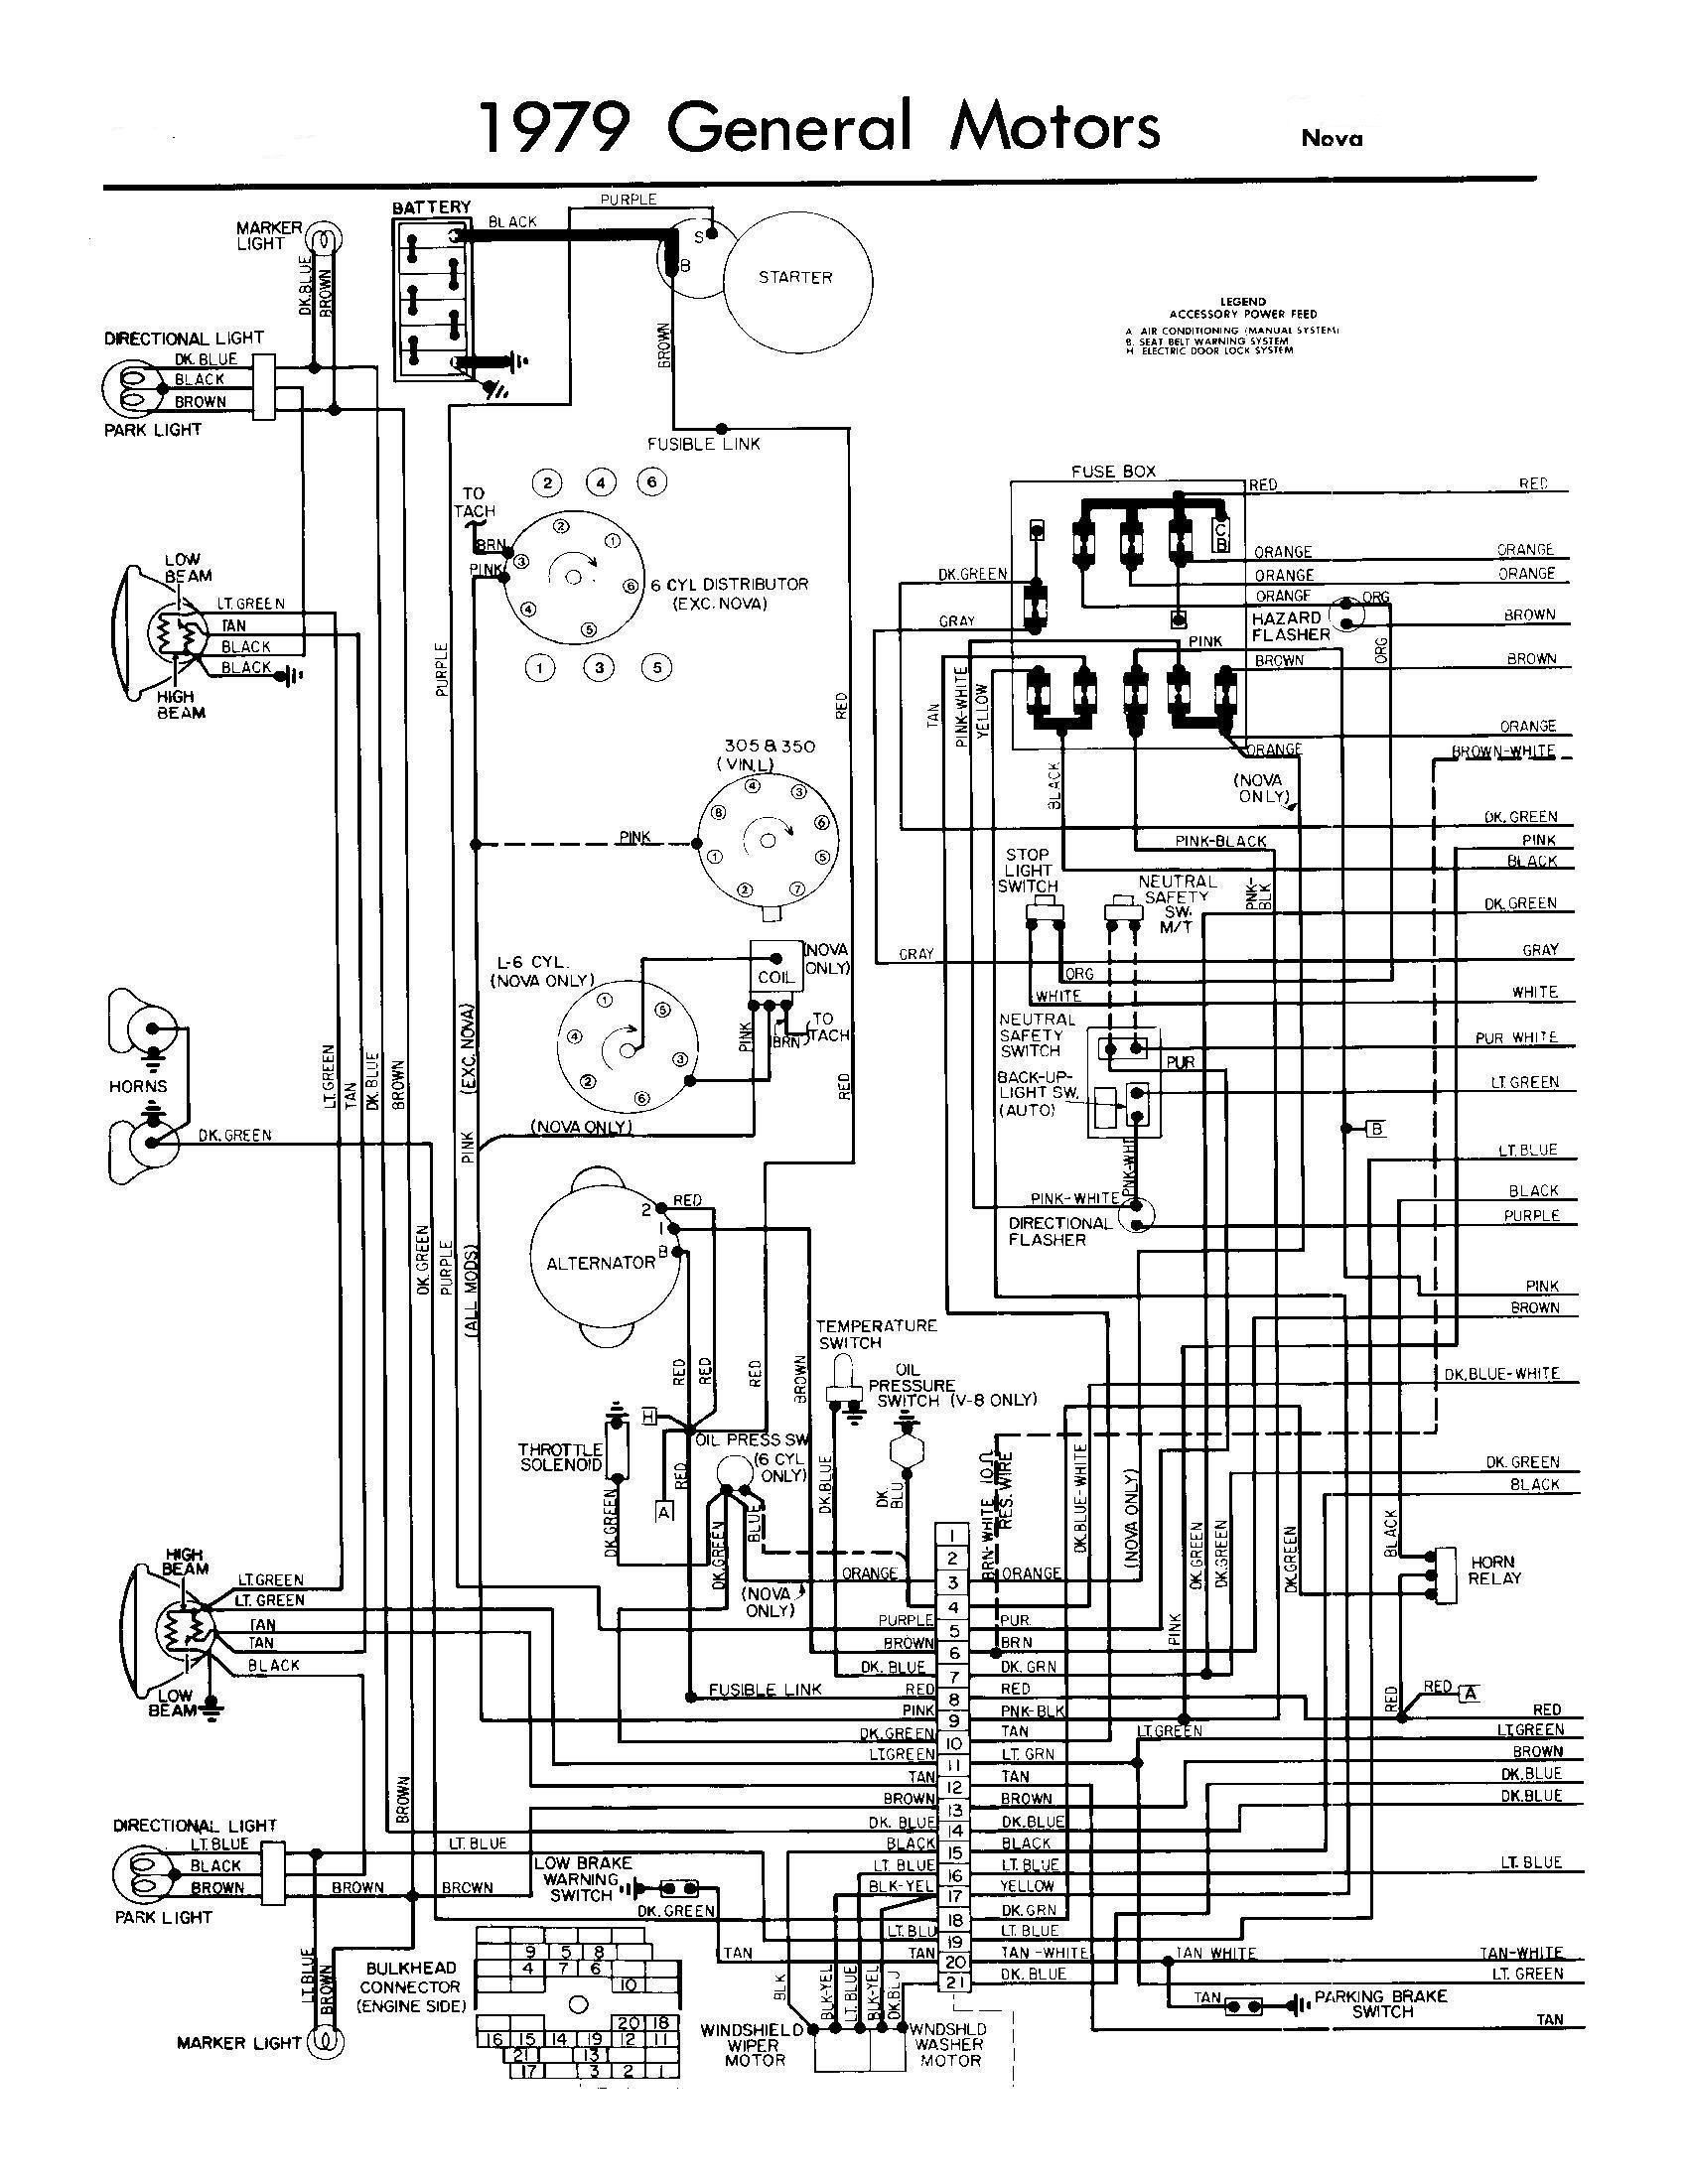 1989 chevy 305 wiring harness diagram wiring diagram read Chevy HEI Distributor Module Wiring Diagram